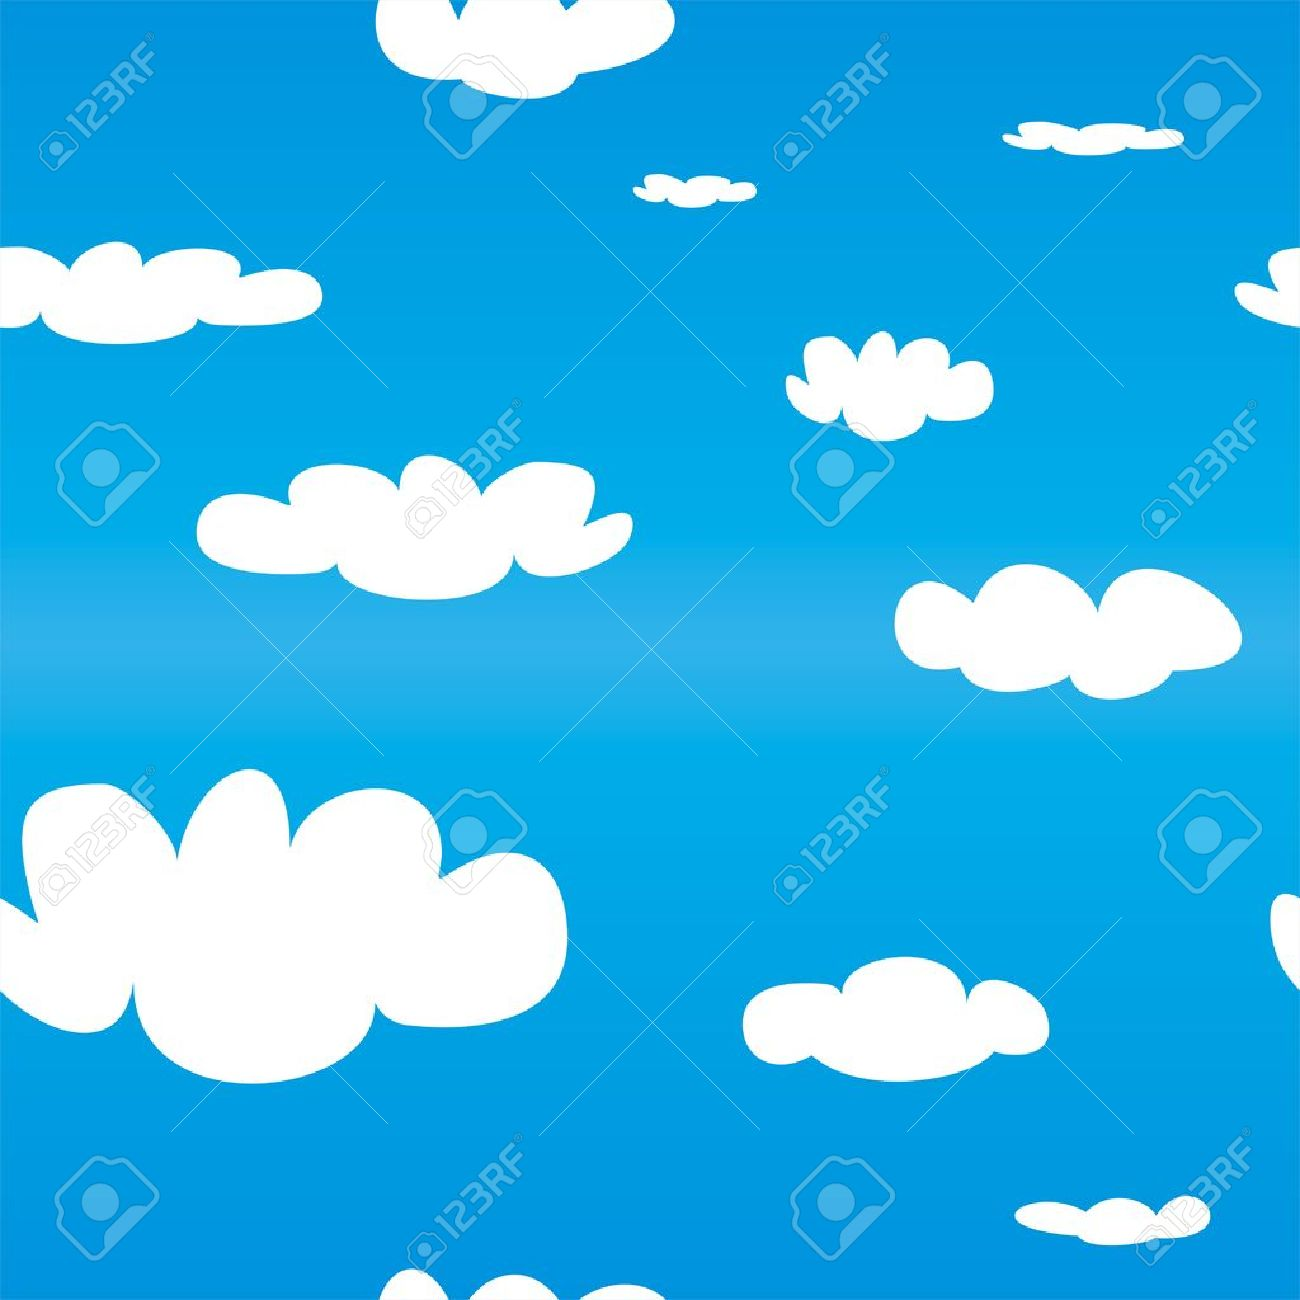 Seamless Vector Pattern With White Clouds On Blue Sky Background Cloud Computing Concept Cartoon Flat